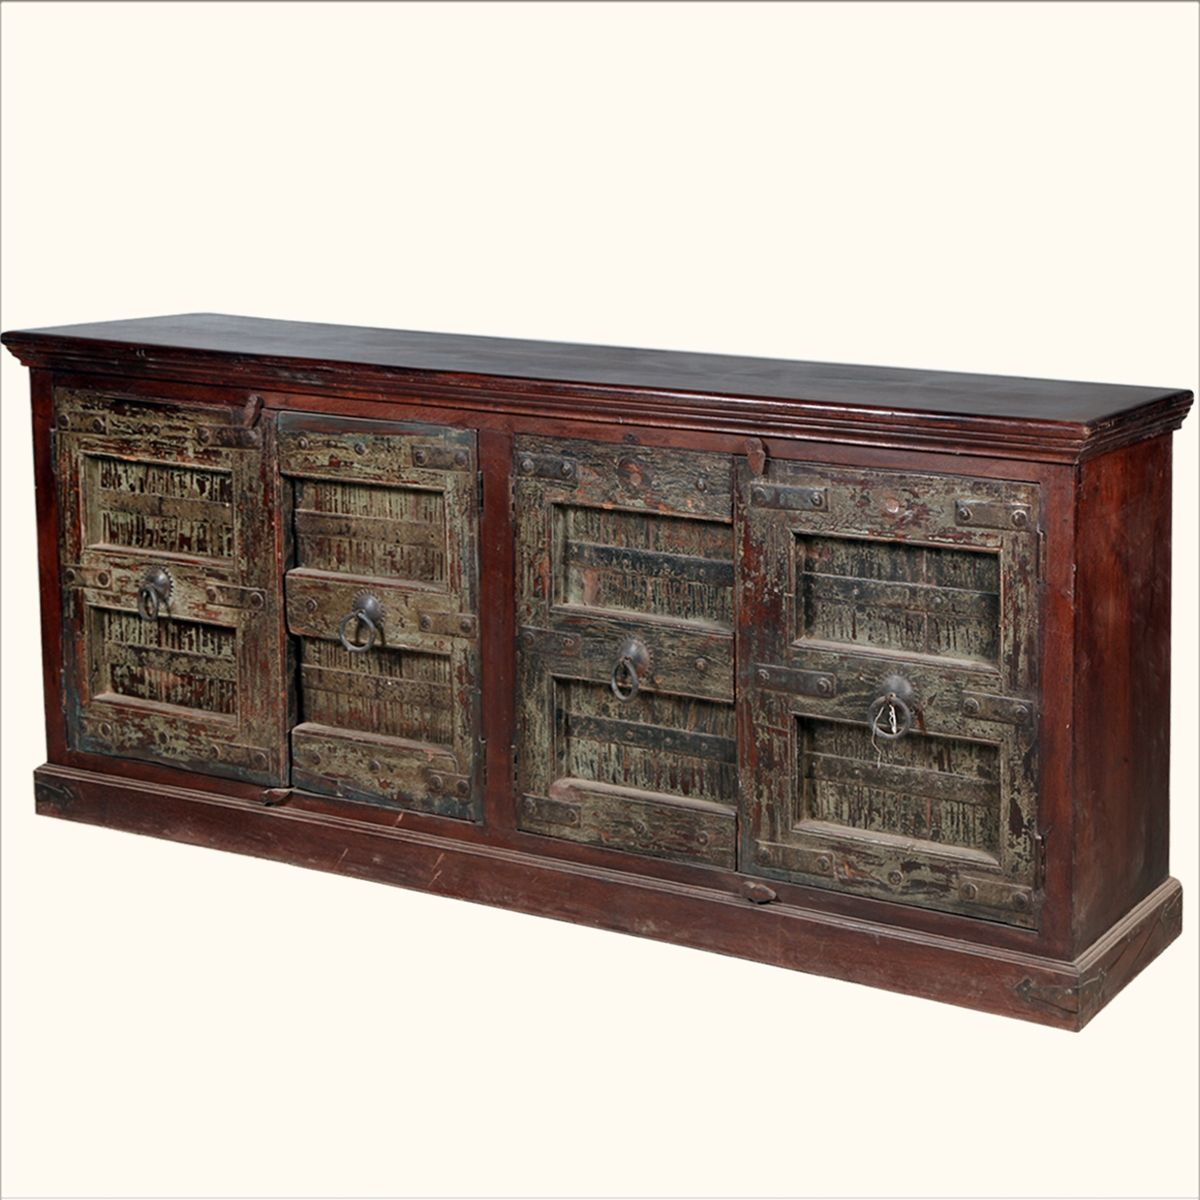 Rustic Reclaimed Wood English Gothic Sideboard Buffet Storage Cabinet